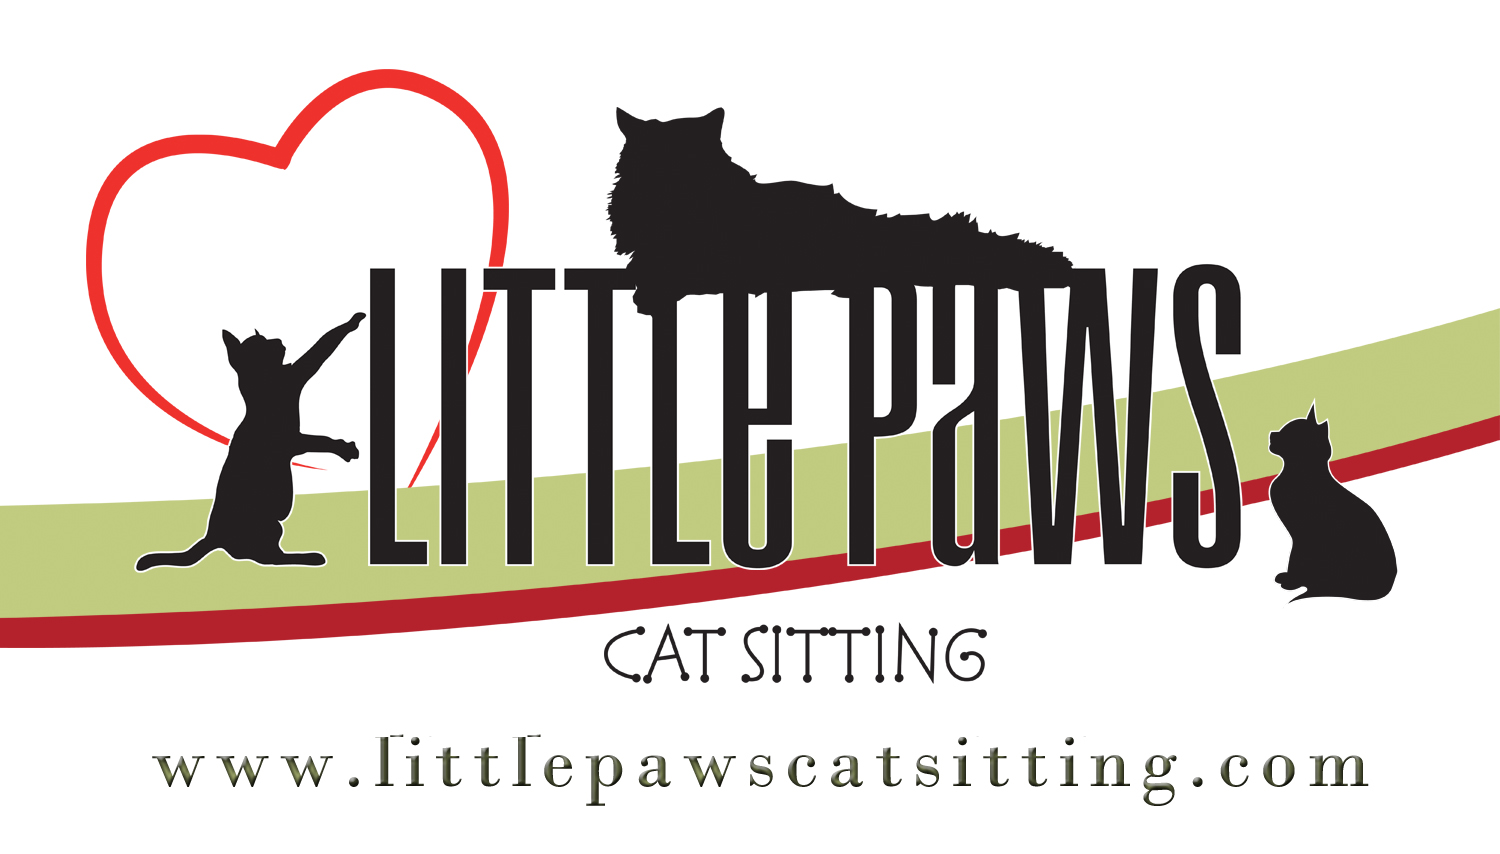 Need Caring Cat Sitting?